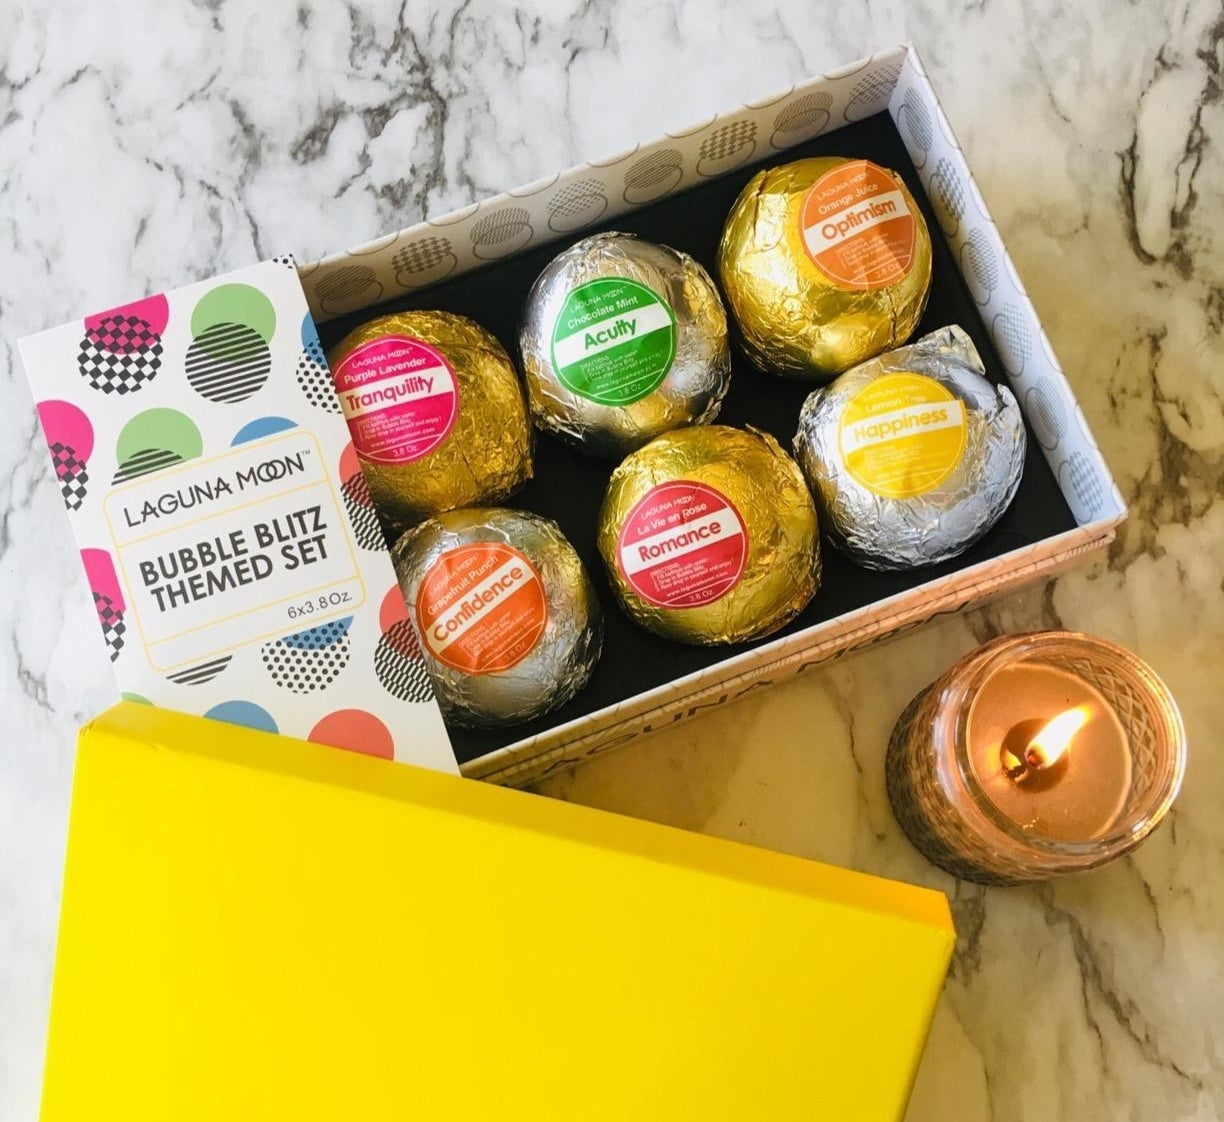 reviewer image of the lagunamoon bath bombs in their box packaging next to a lit candle